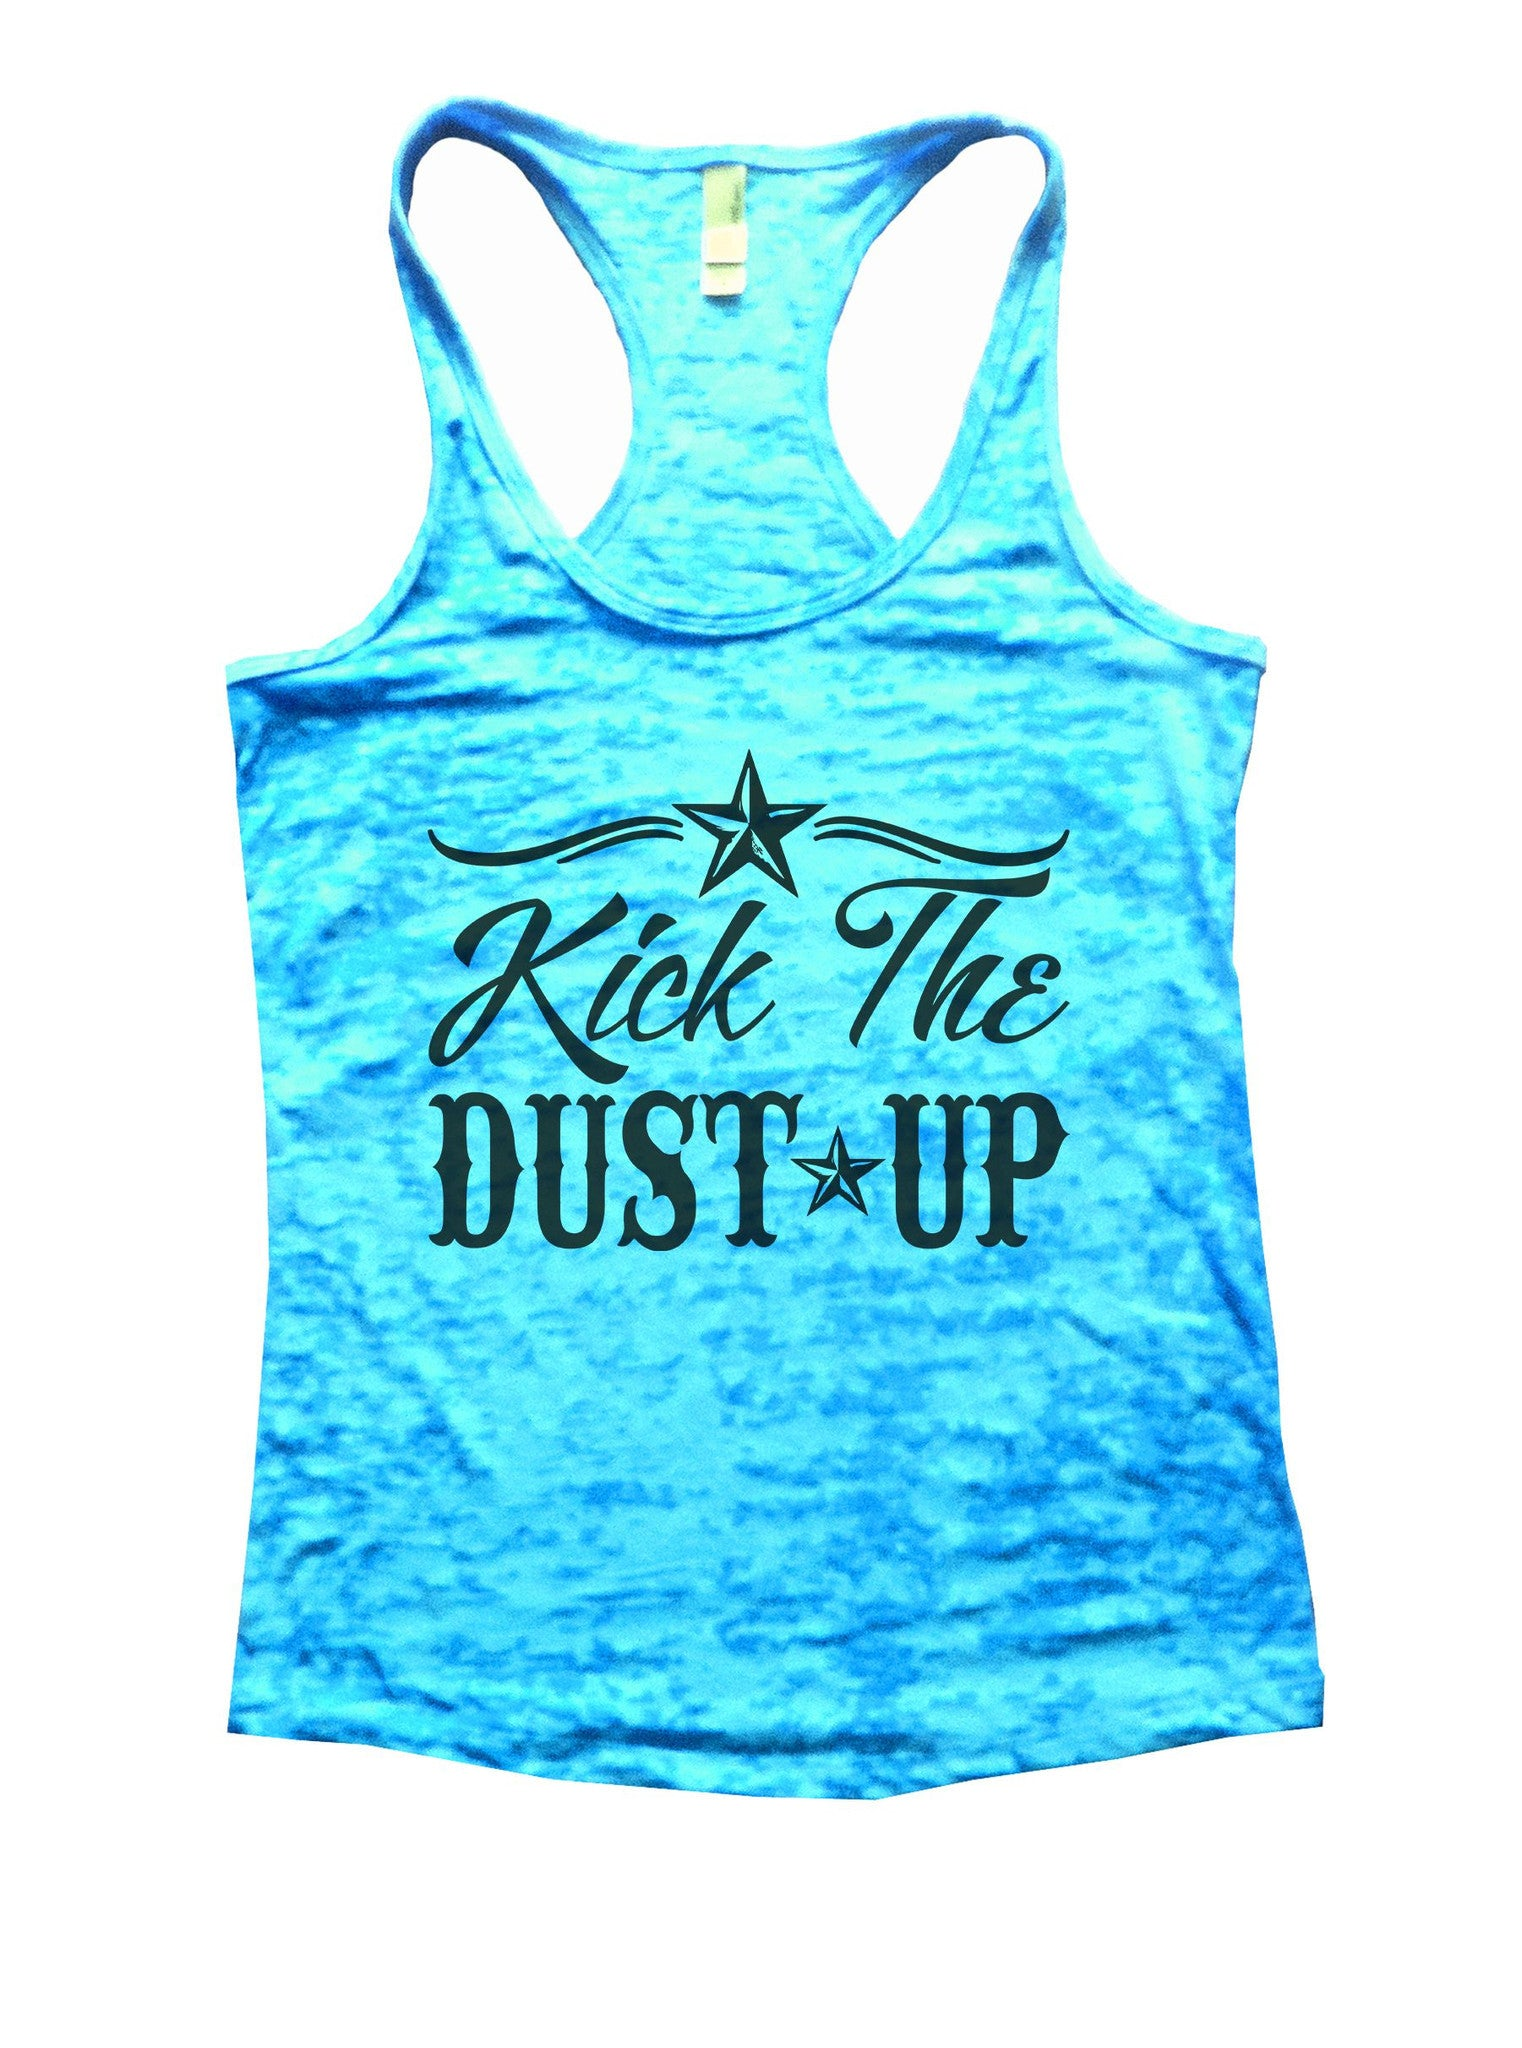 Kick The Dust Up Burnout Tank Top By BurnoutTankTops.com - 1028 - Funny Shirts Tank Tops Burnouts and Triblends  - 4